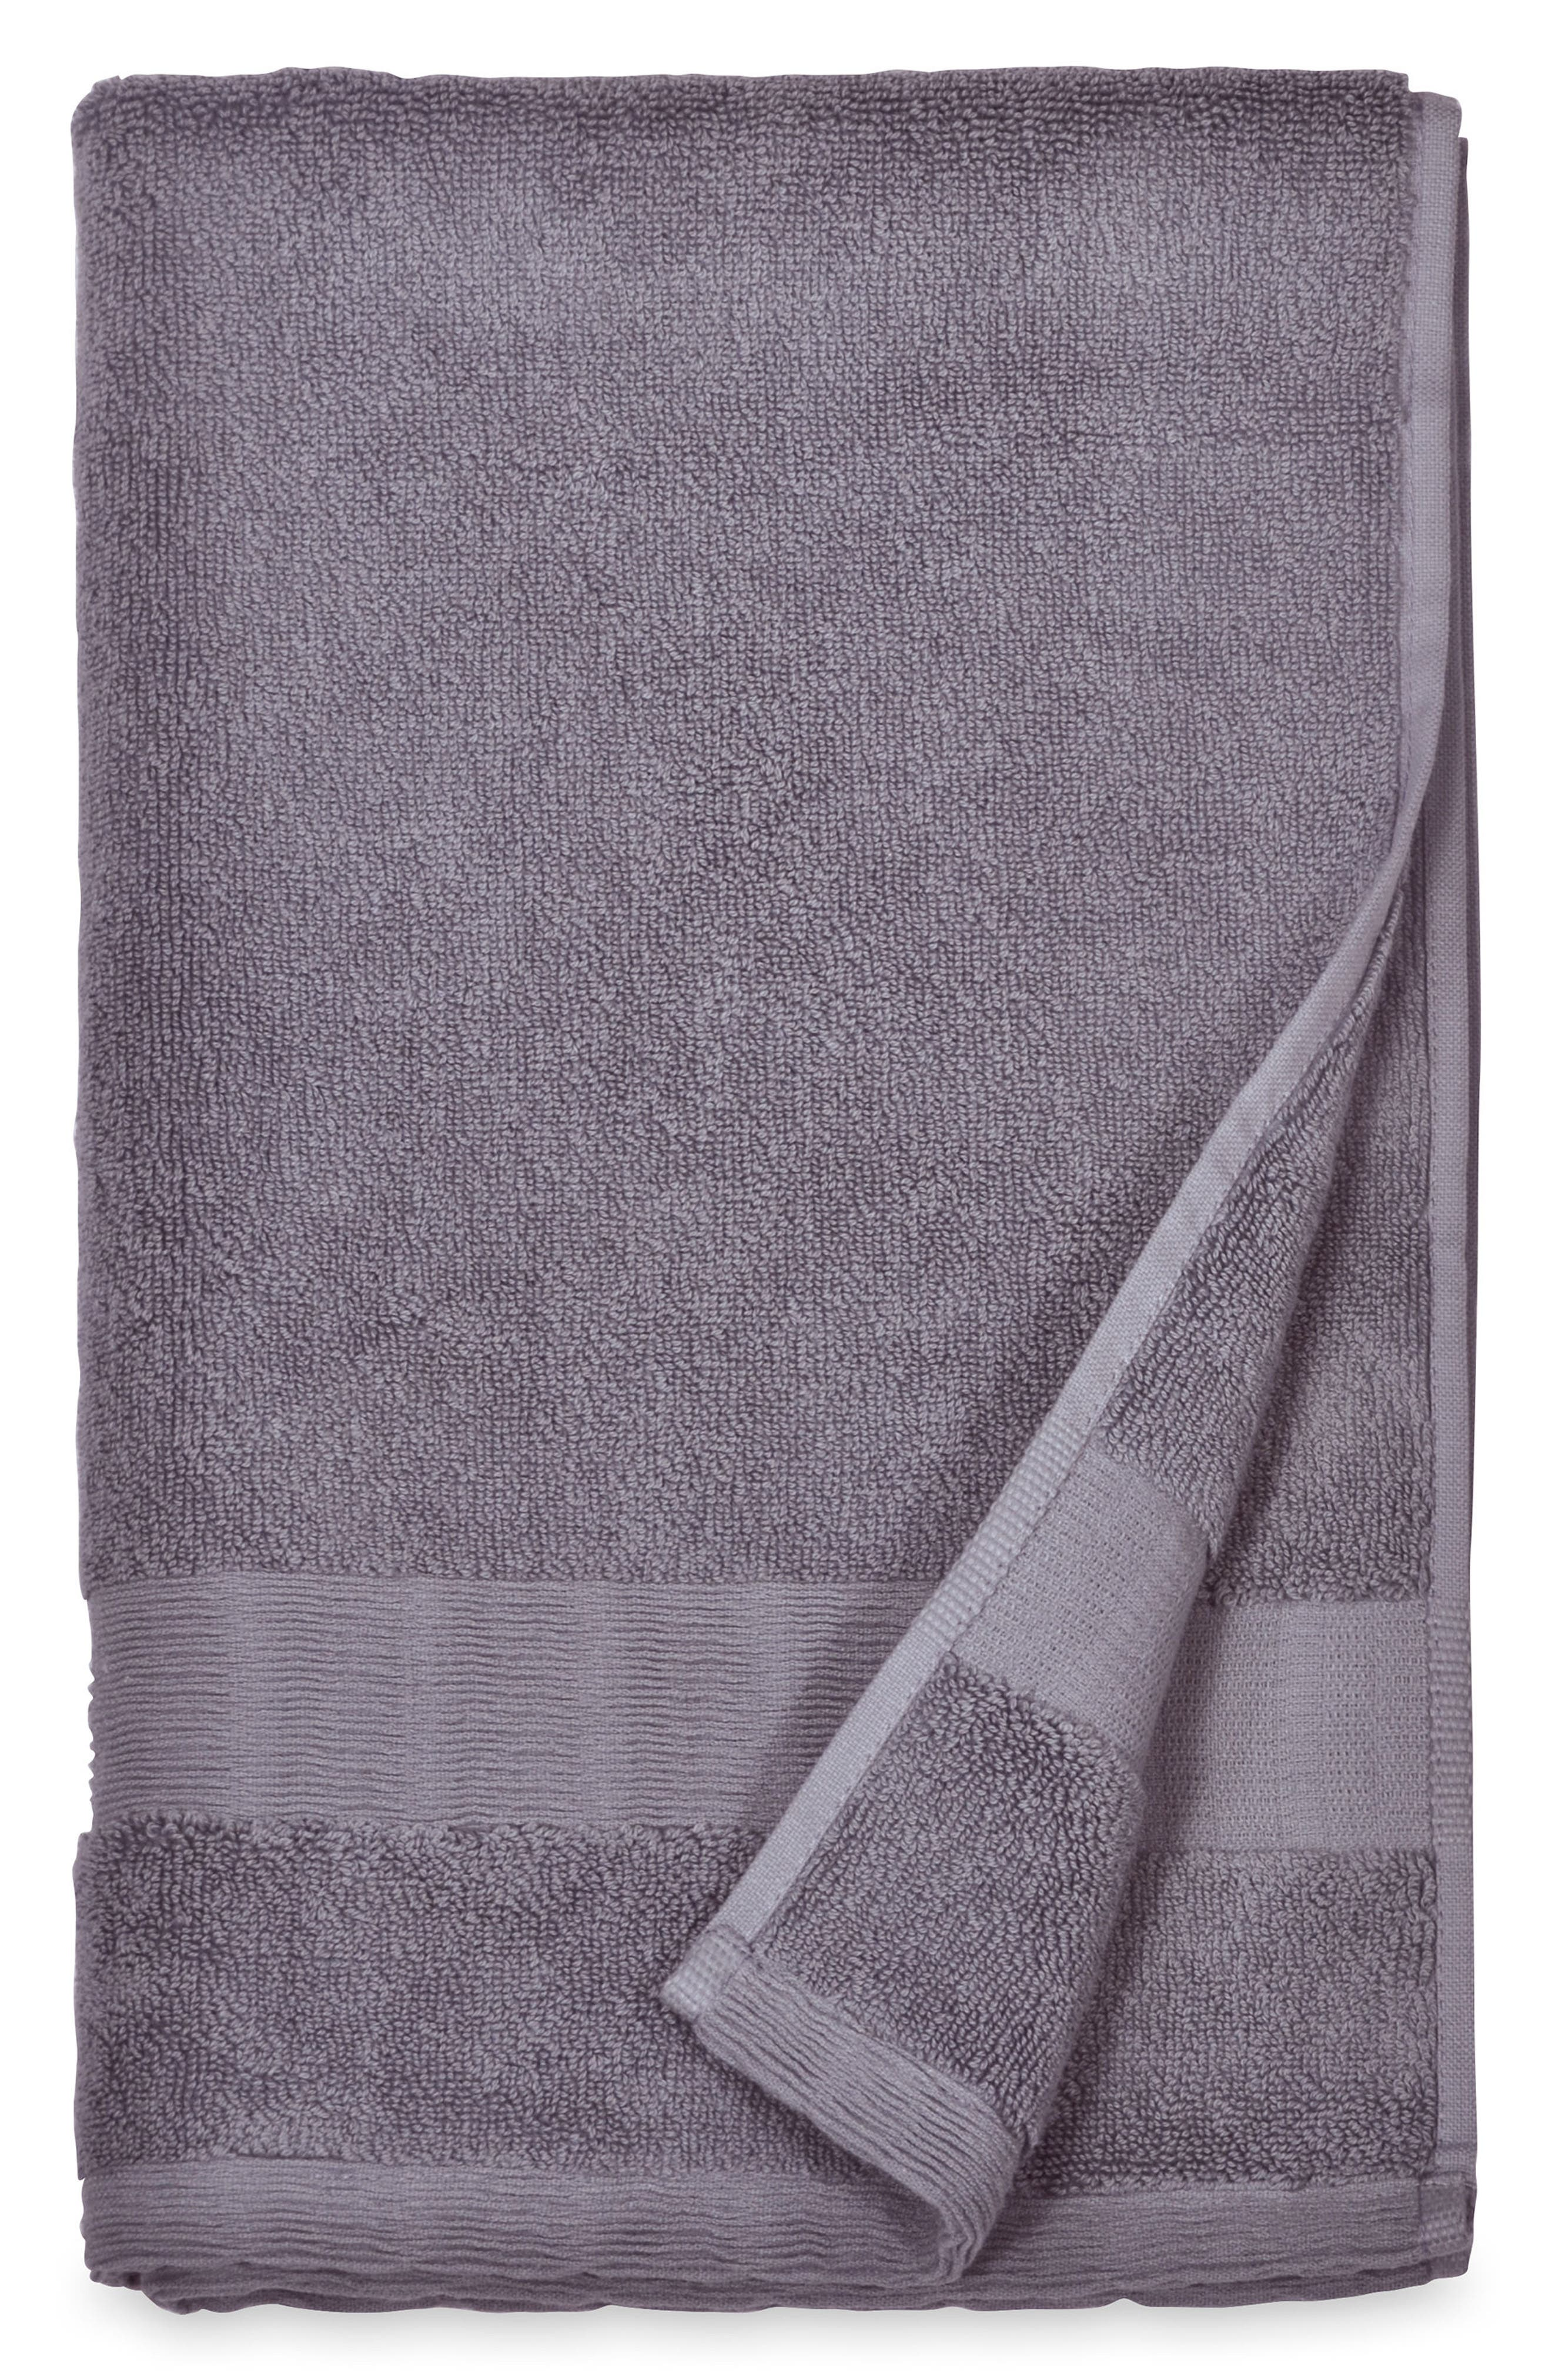 Mercer Hand Towel,                             Main thumbnail 1, color,                             Dusty Lavender